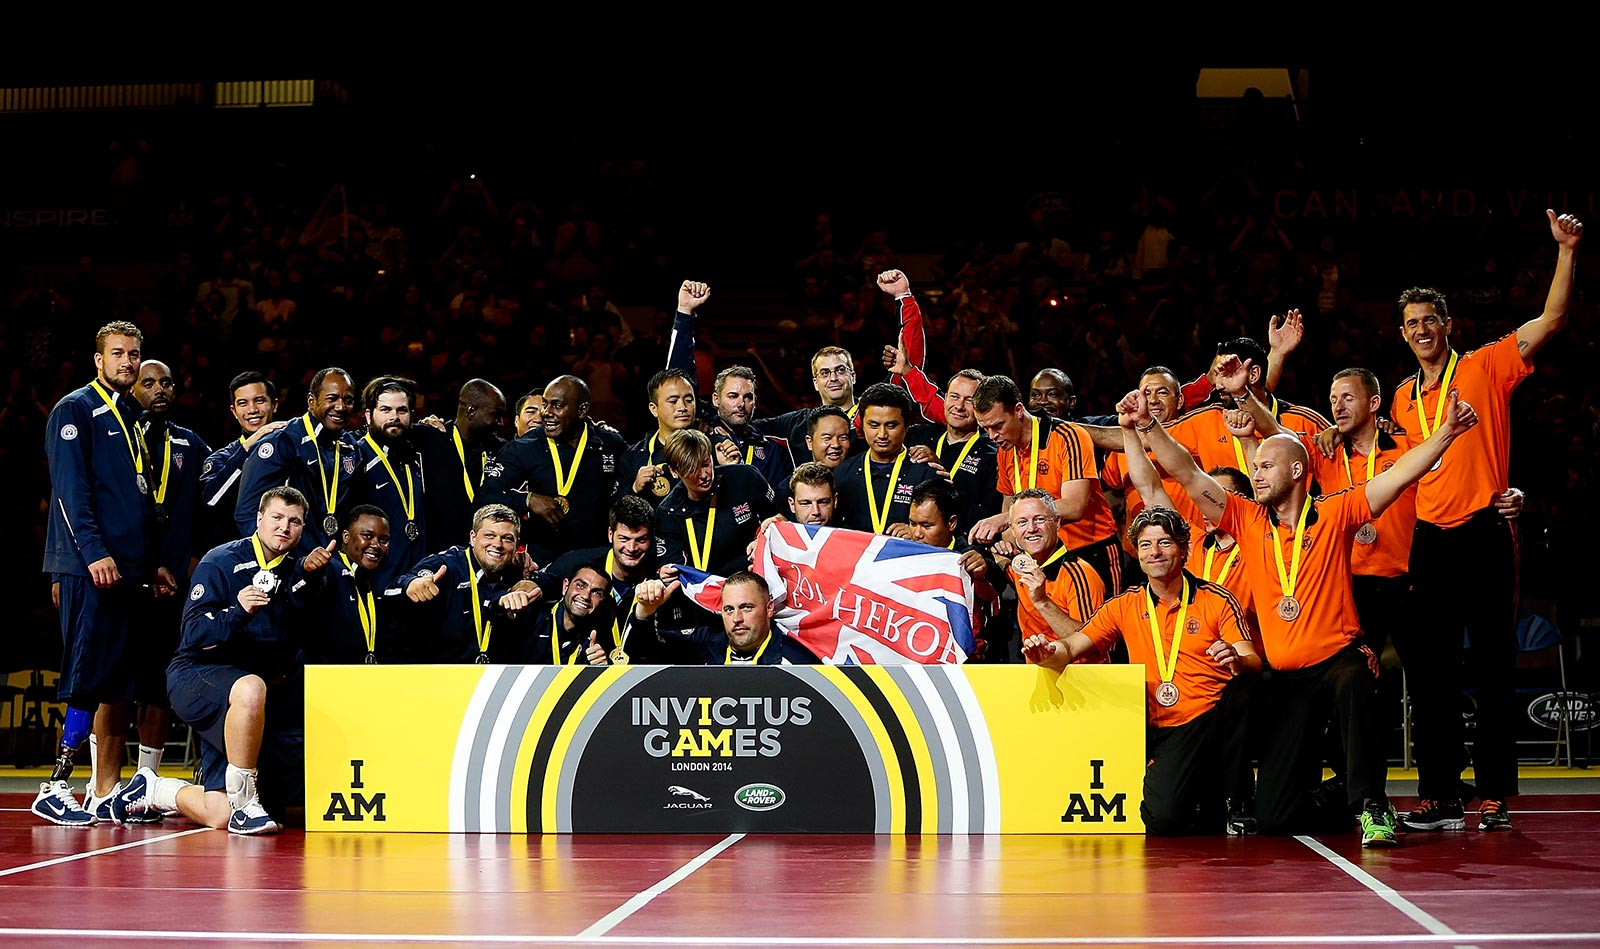 LONDON 2014 – Invictus Games Foundation